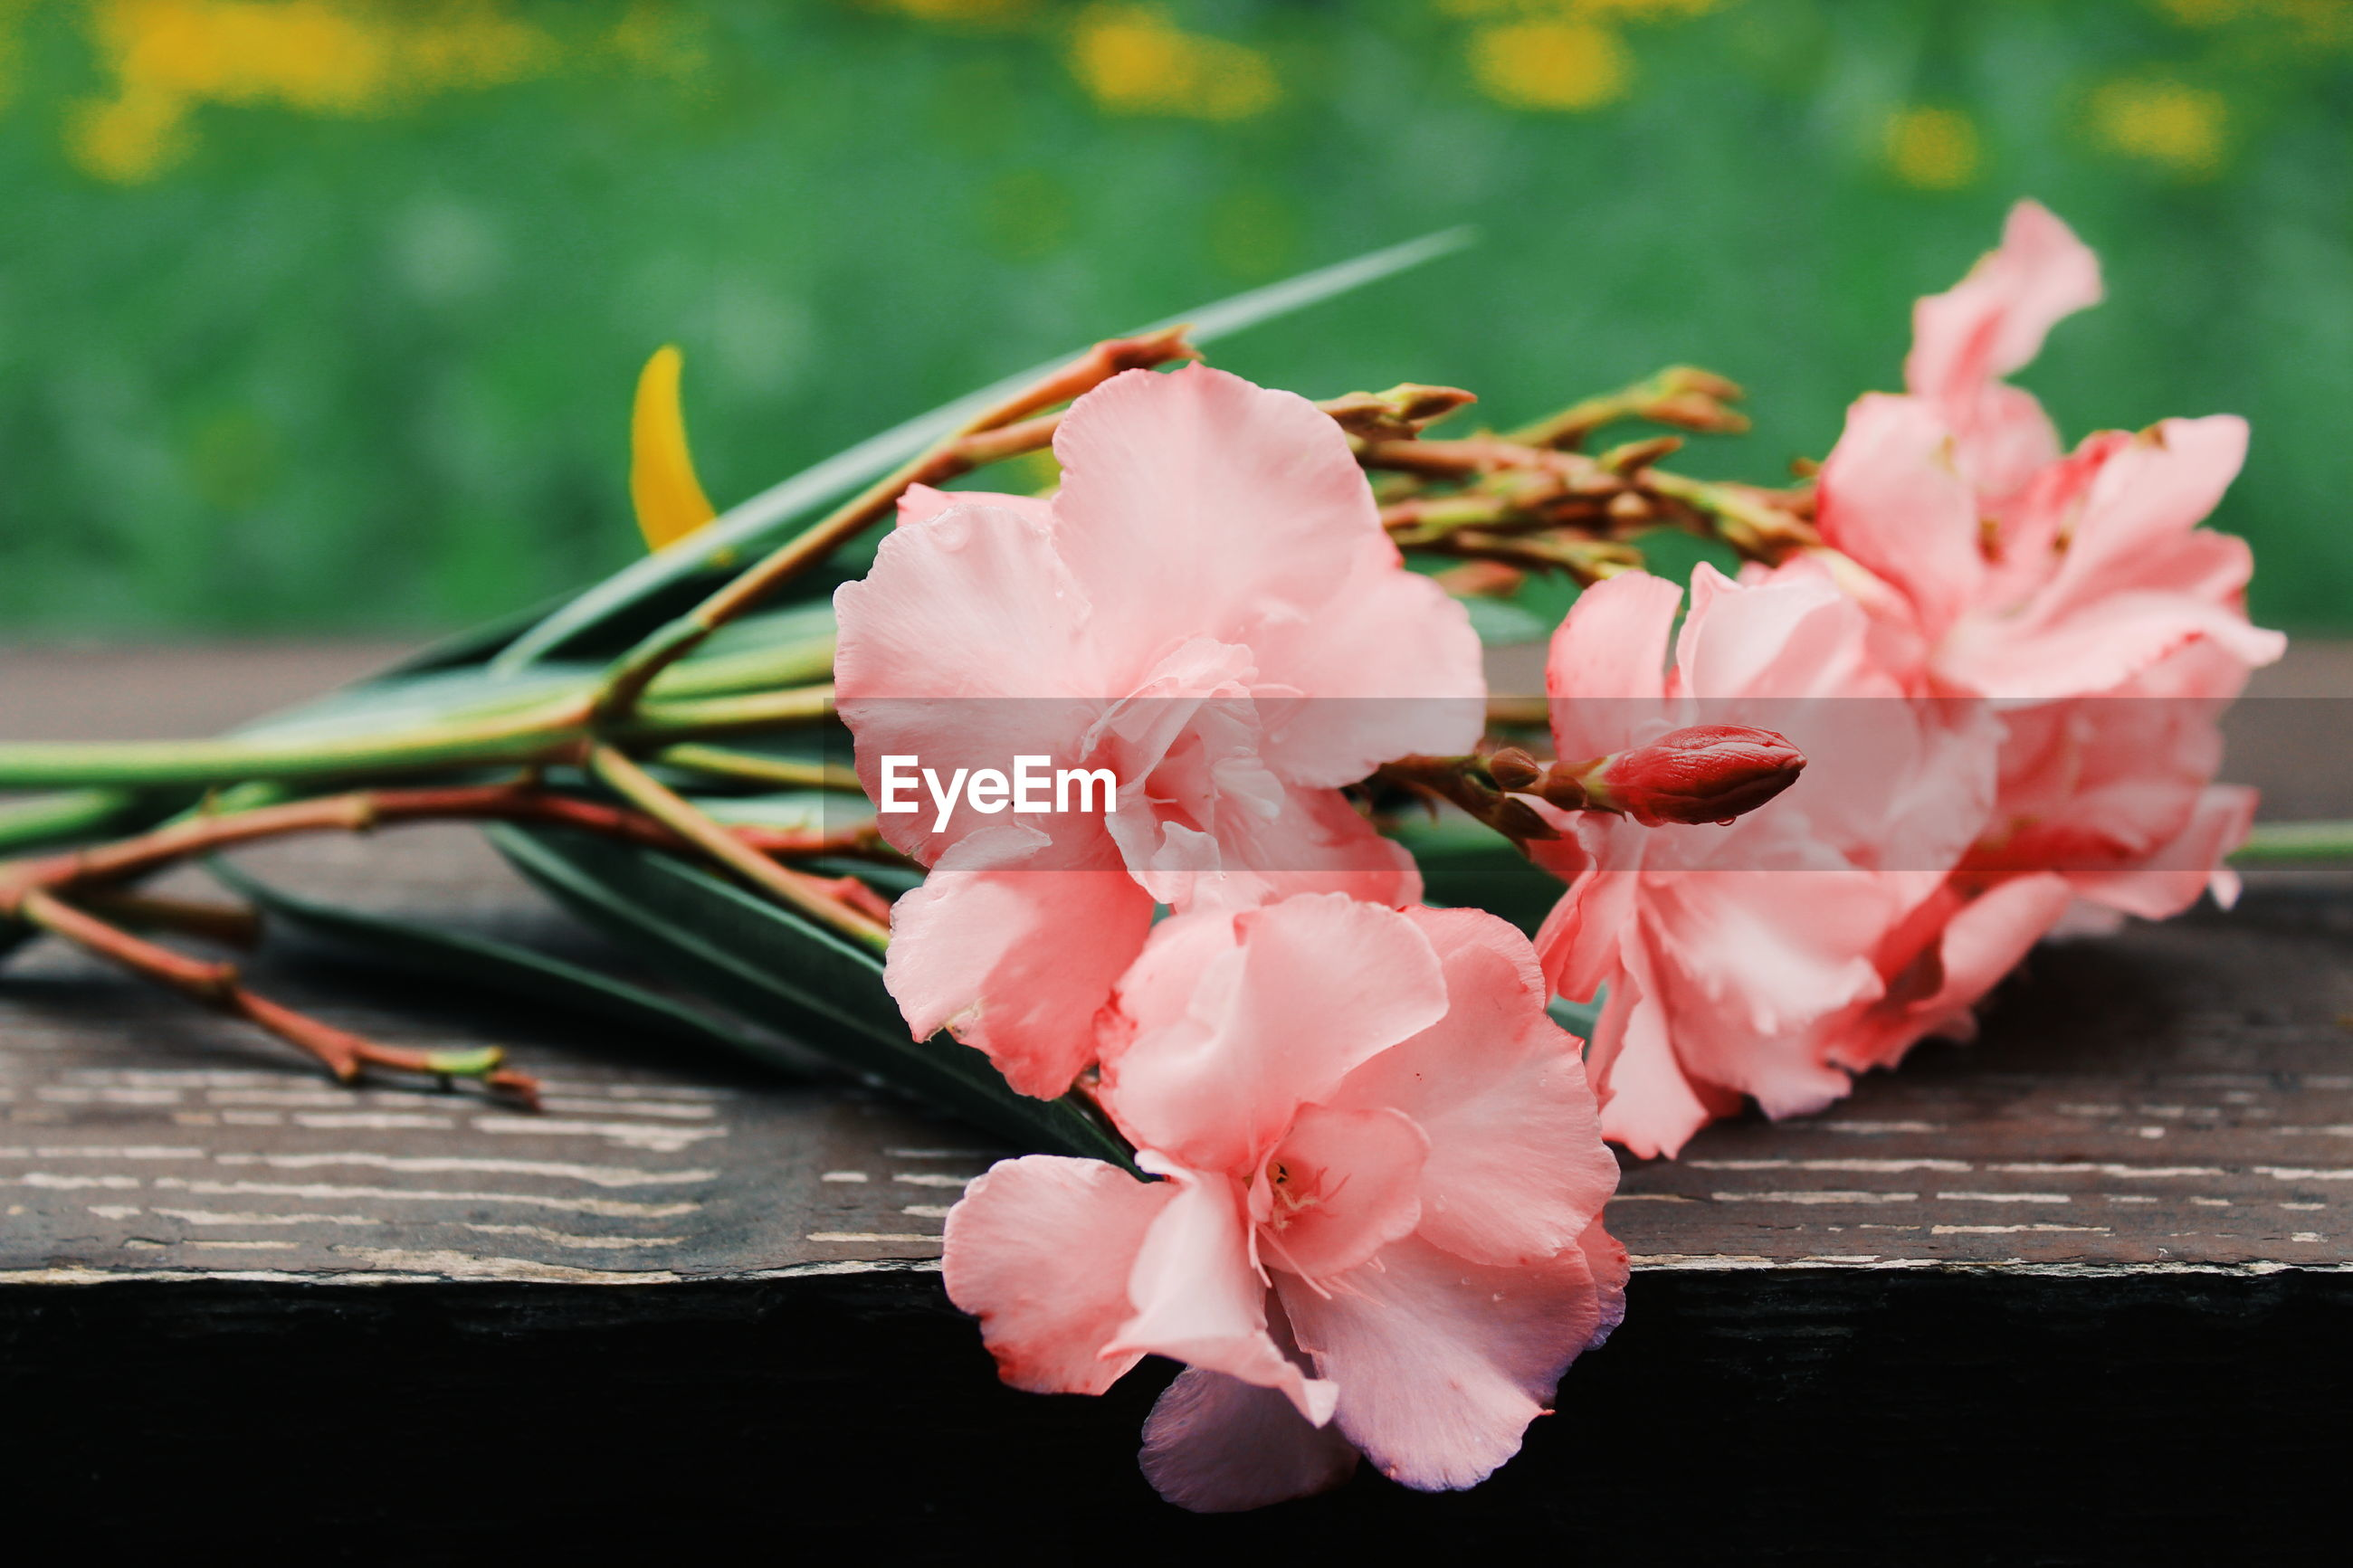 CLOSE-UP OF PINK FLOWERING PLANT WITH WOOD